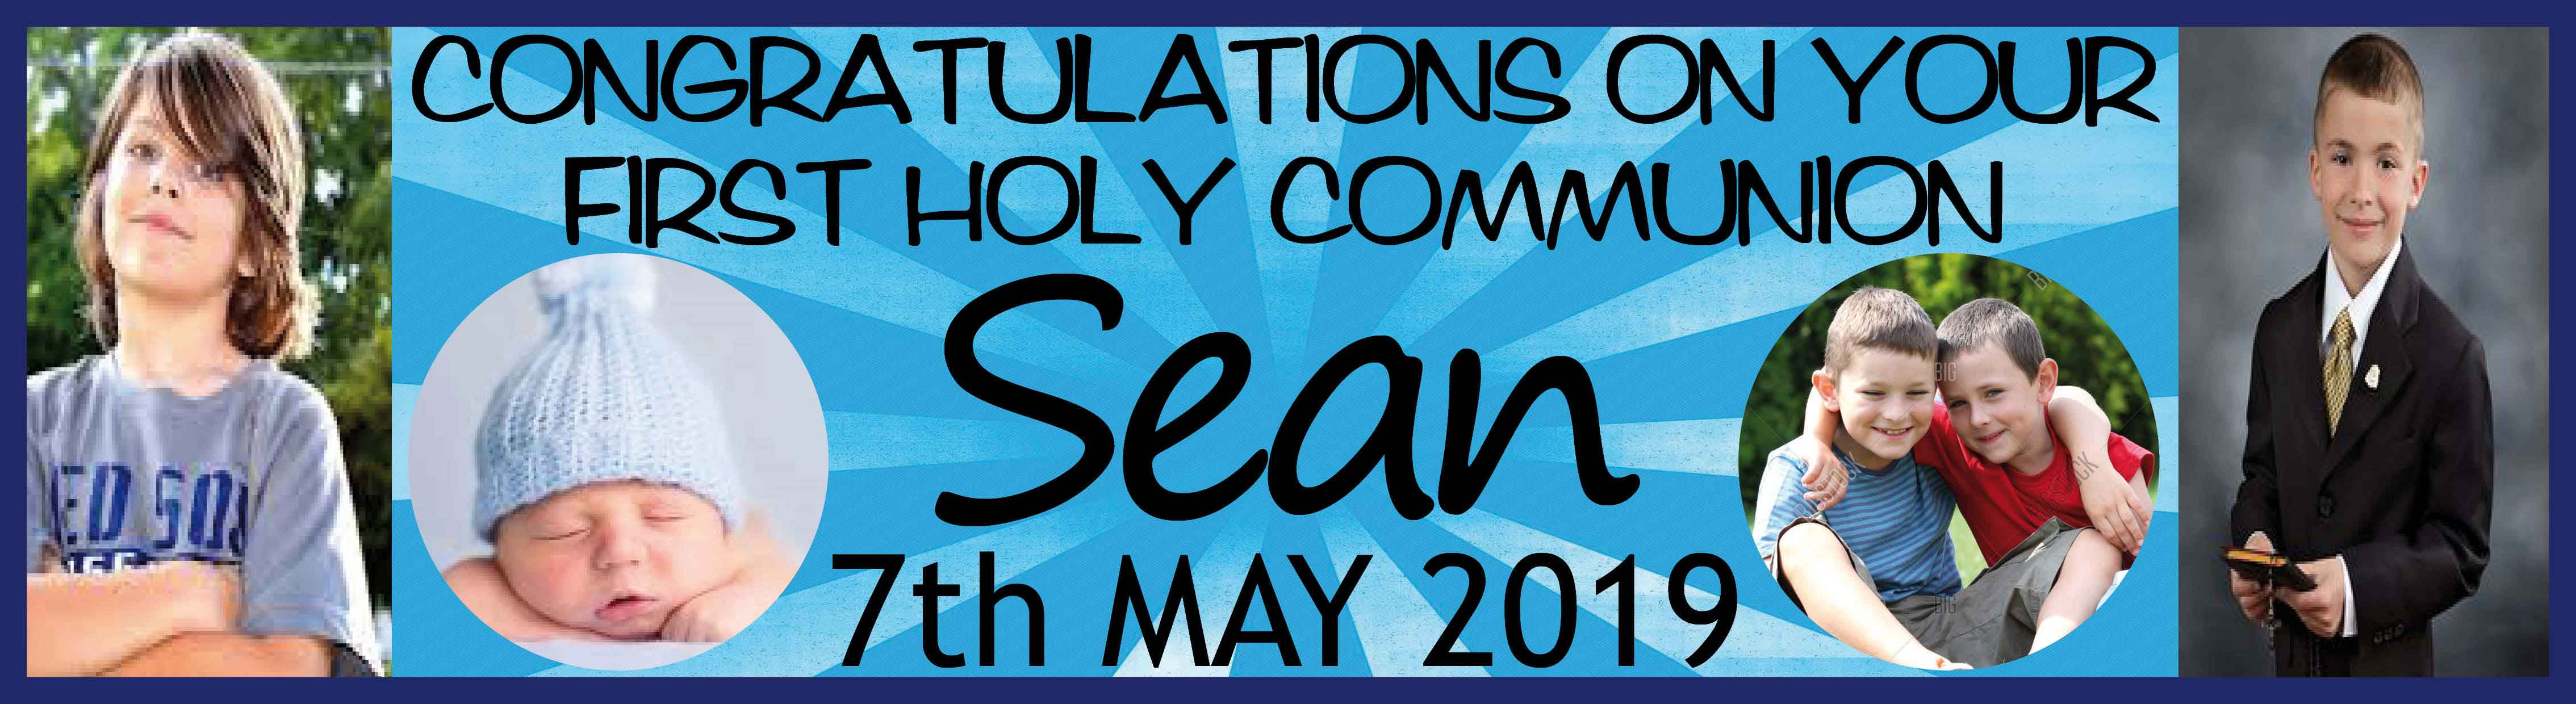 1st Holy Communion Banner 14